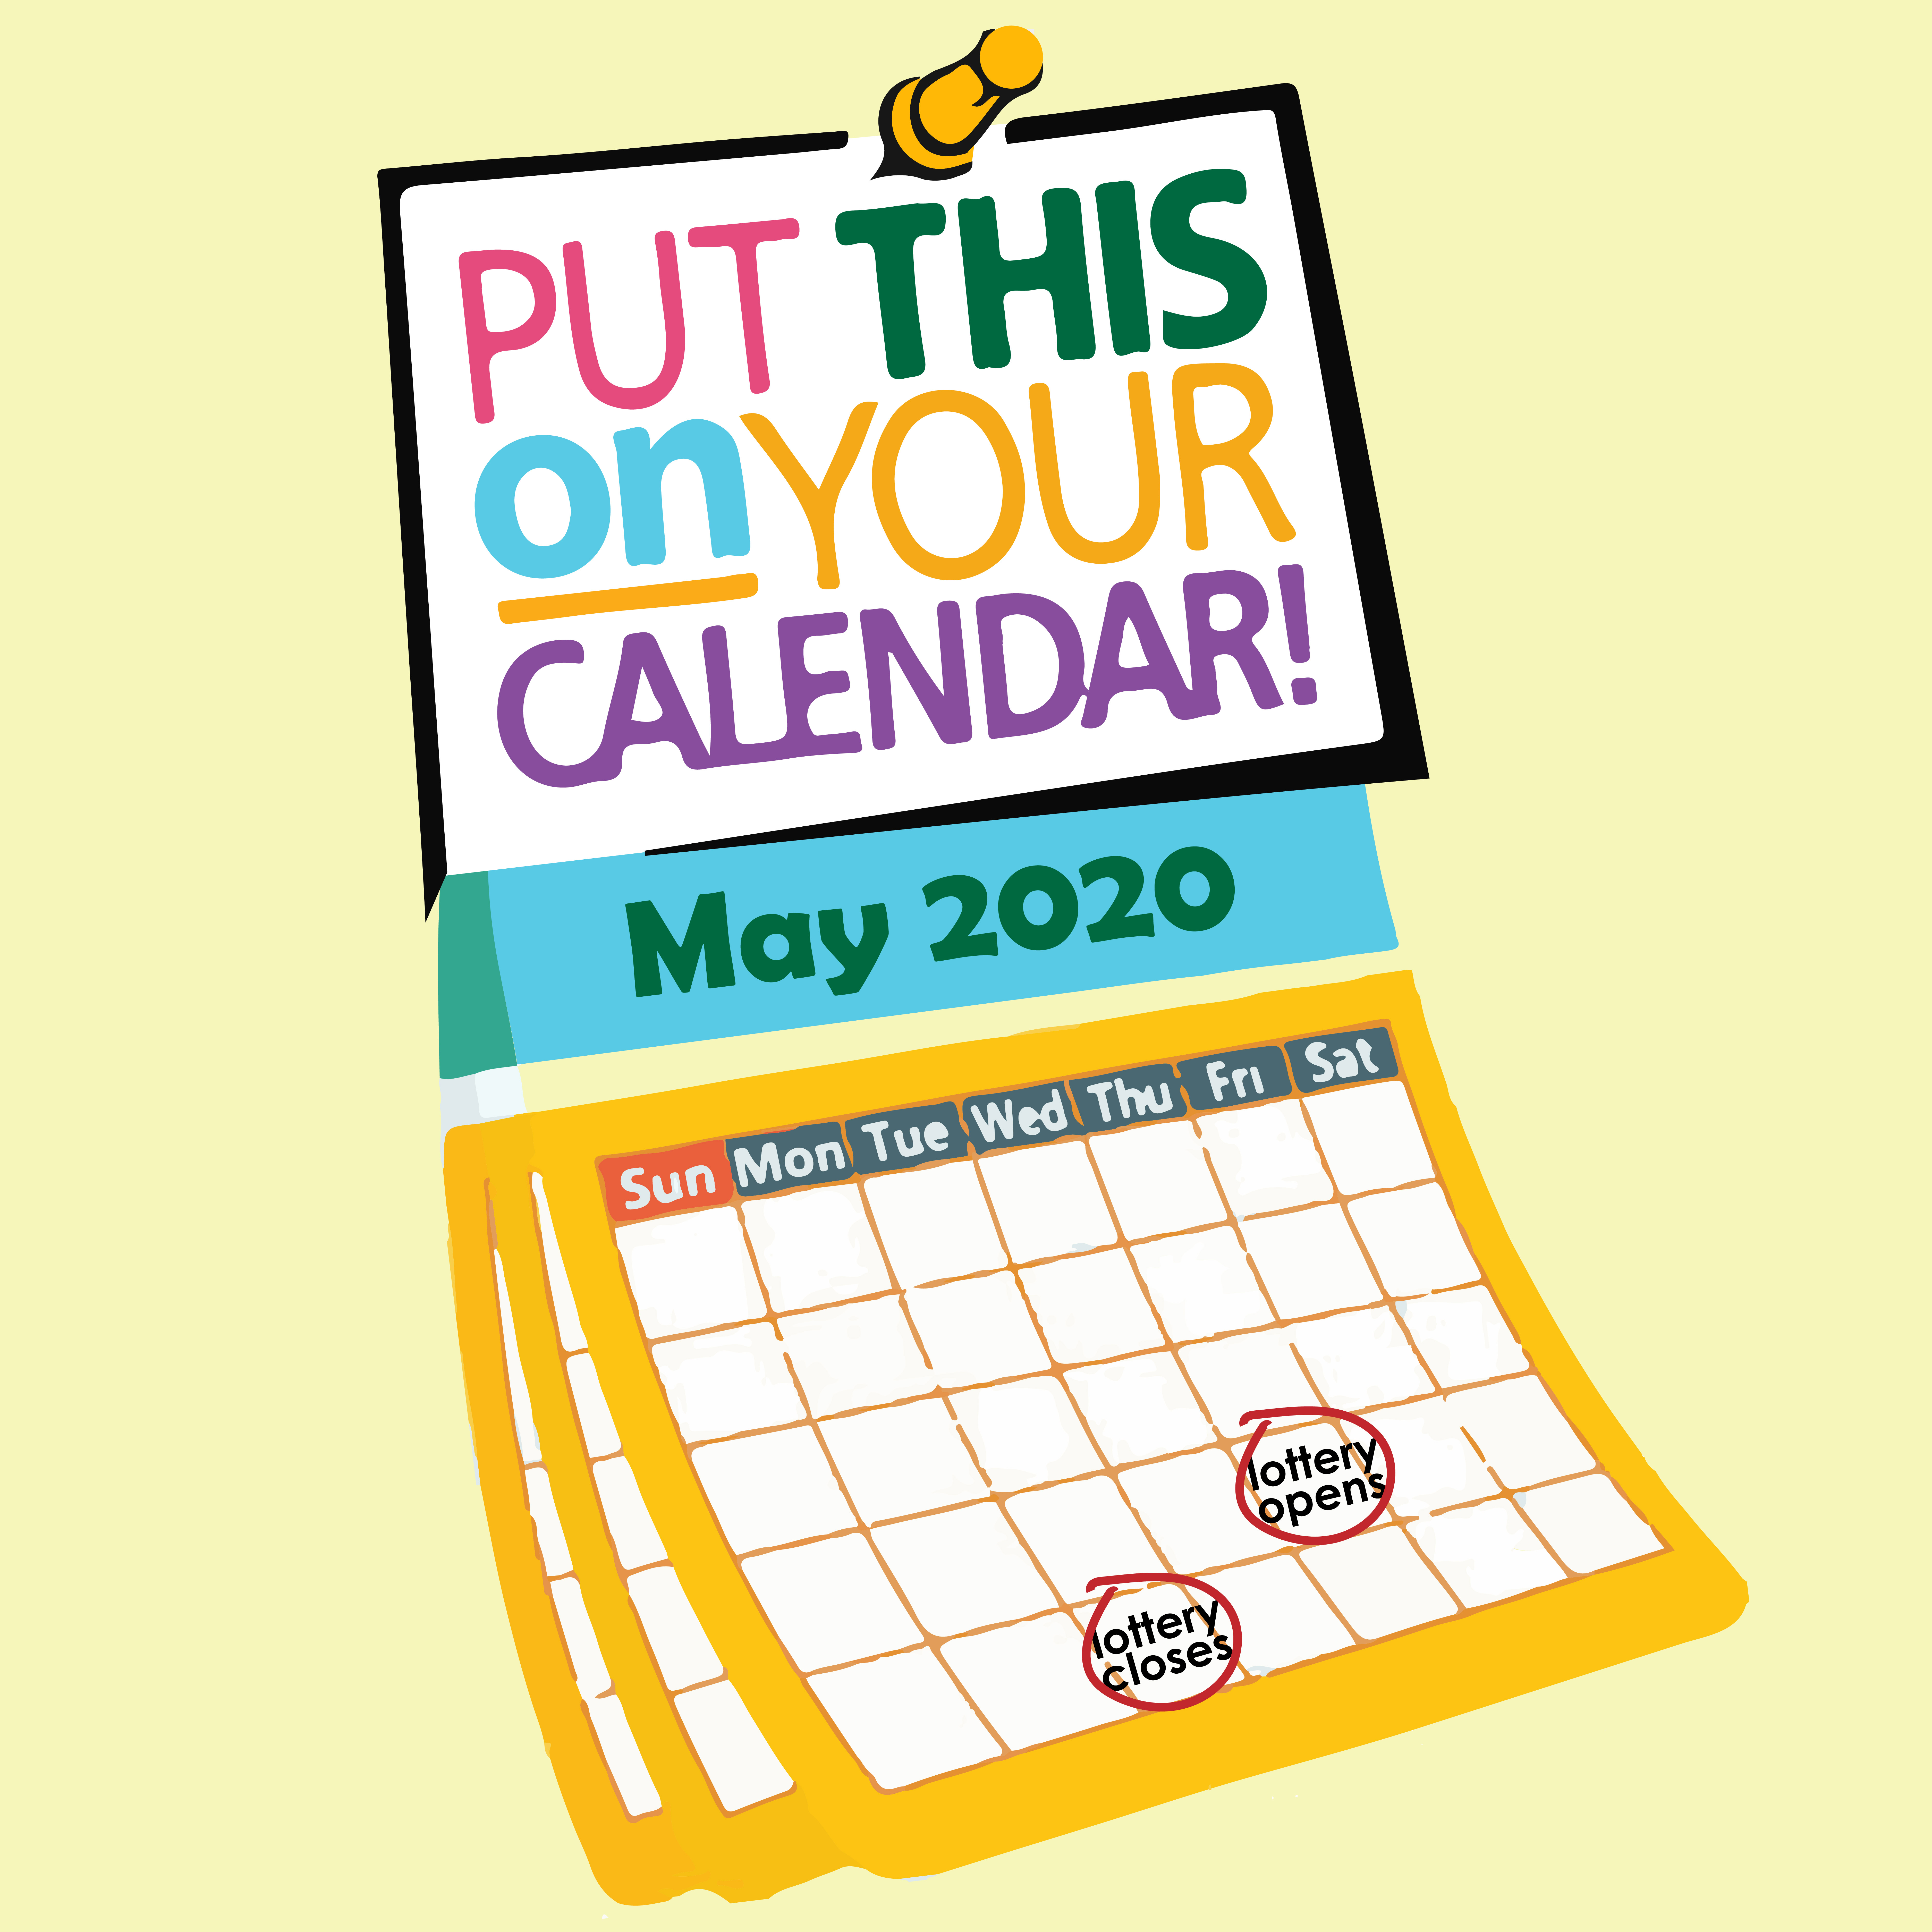 Enter the lottery from May 21 - May 26.